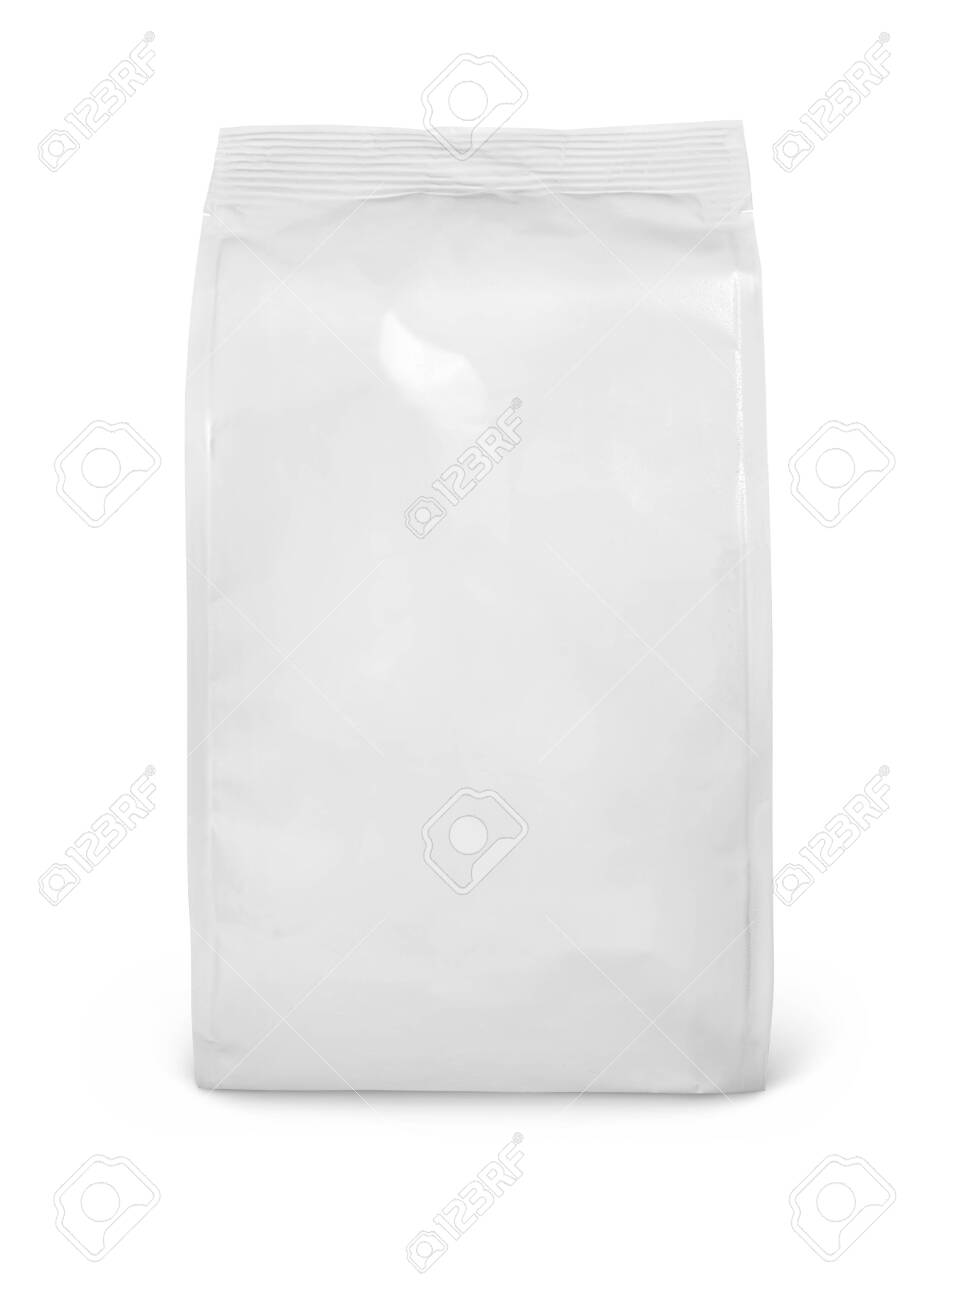 Front view of blank snack paper bag package isolated on white - 130110454